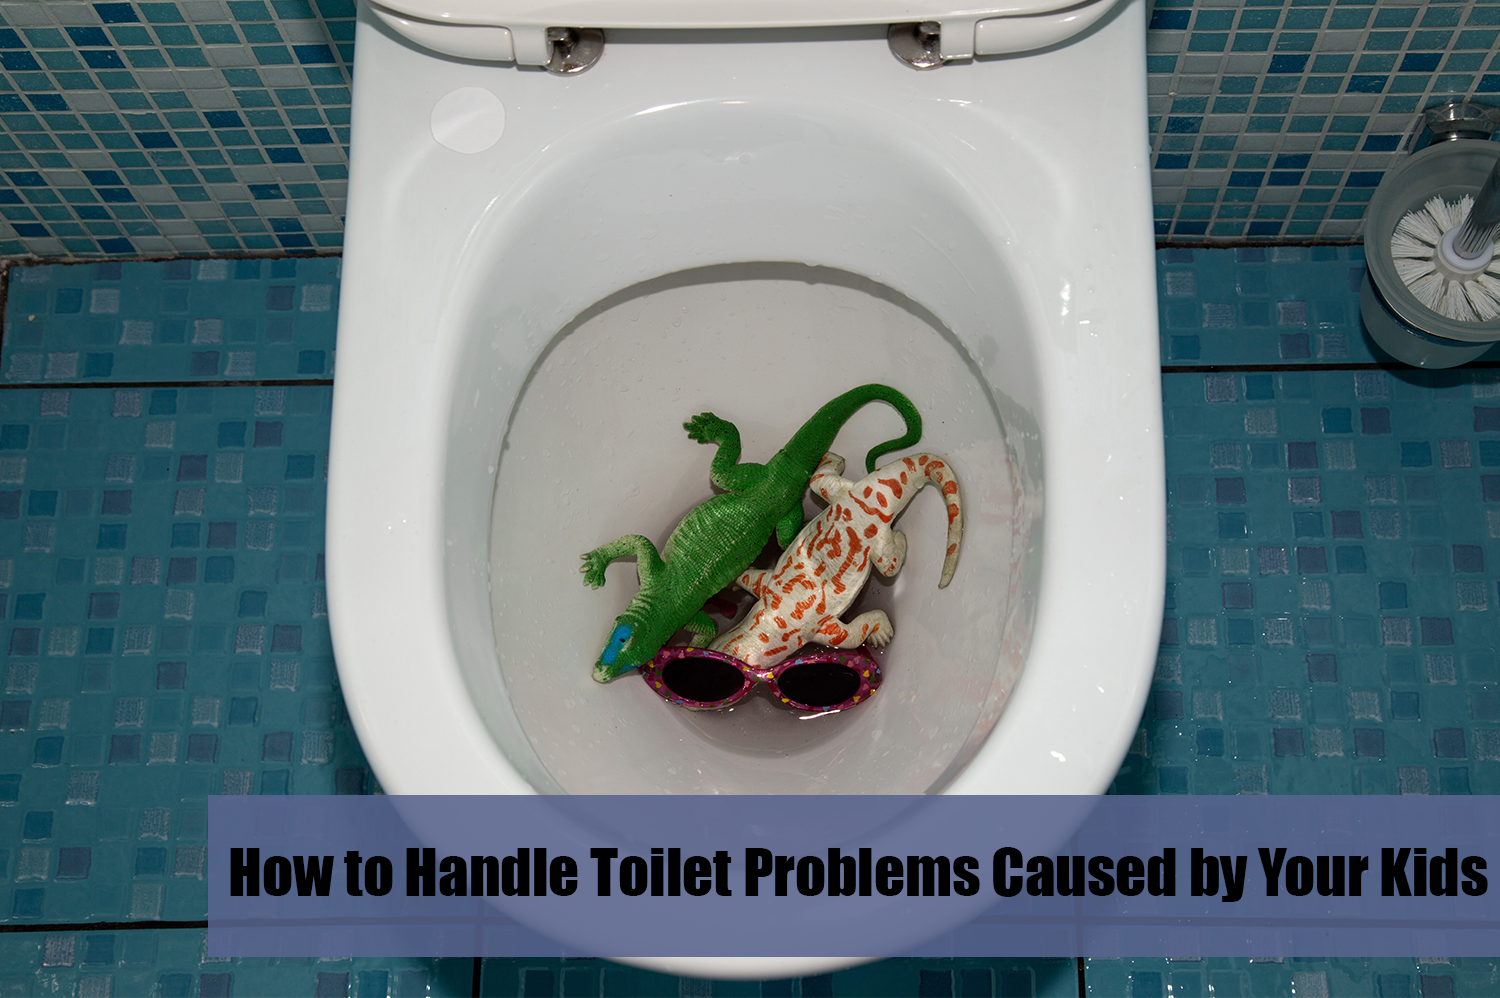 Toilet with two toy alligators and a pair of sunglasses in the bowl; this will likely lead to toilet problems.